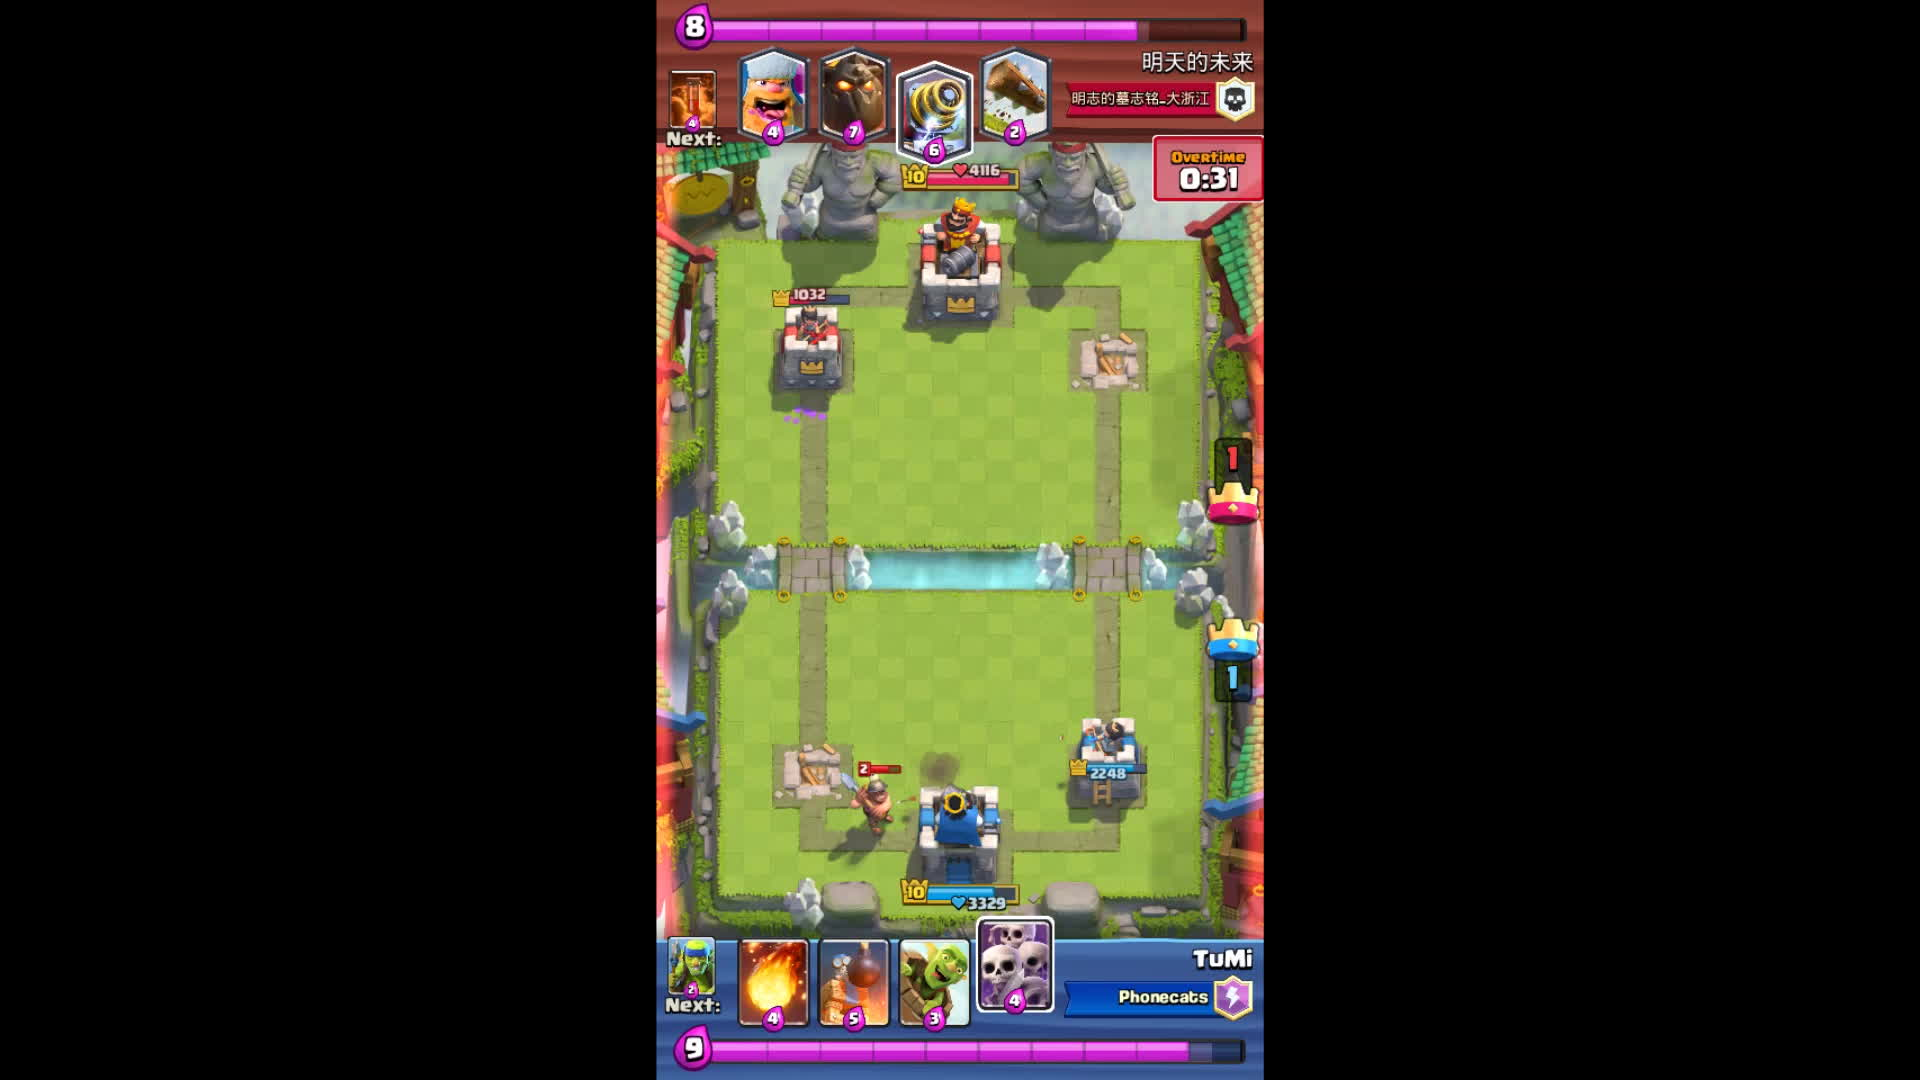 clashroyale, gifsthatendtoosoon, Most satisfying log in TV Royale GIFs